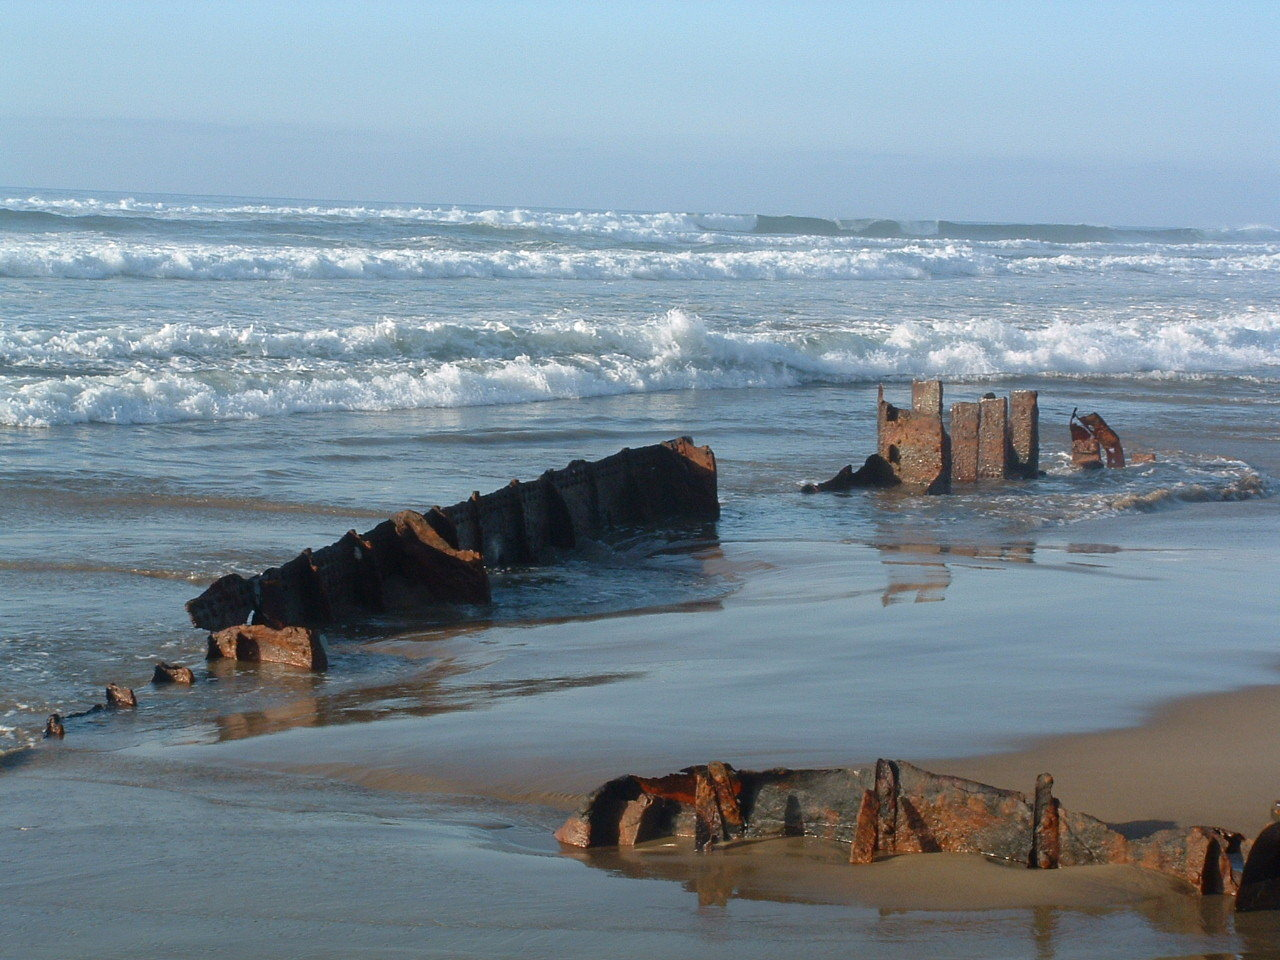 Sujameco wreck in view